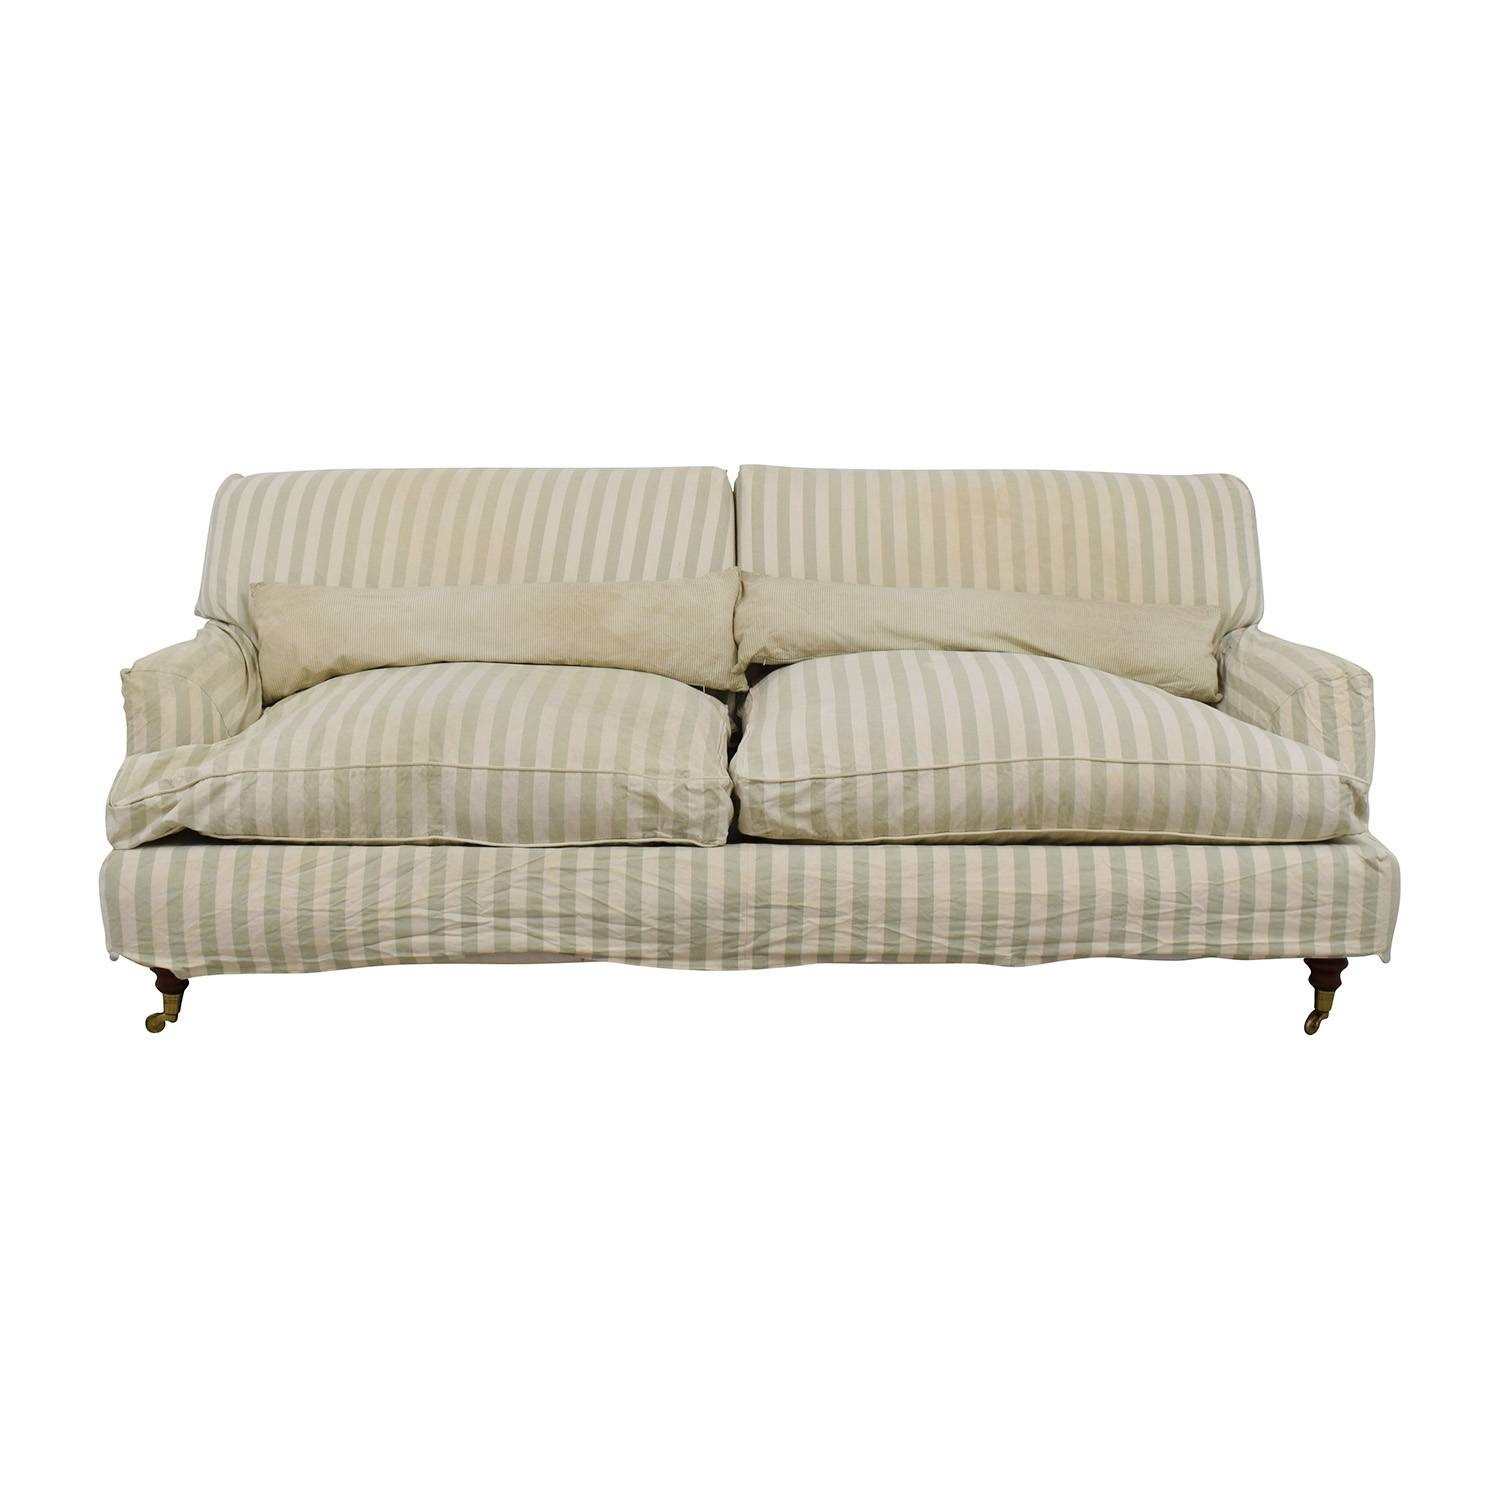 66% Off – Green And White Striped English Roll Arm Sofa / Sofas For Classic English Sofas (View 1 of 30)